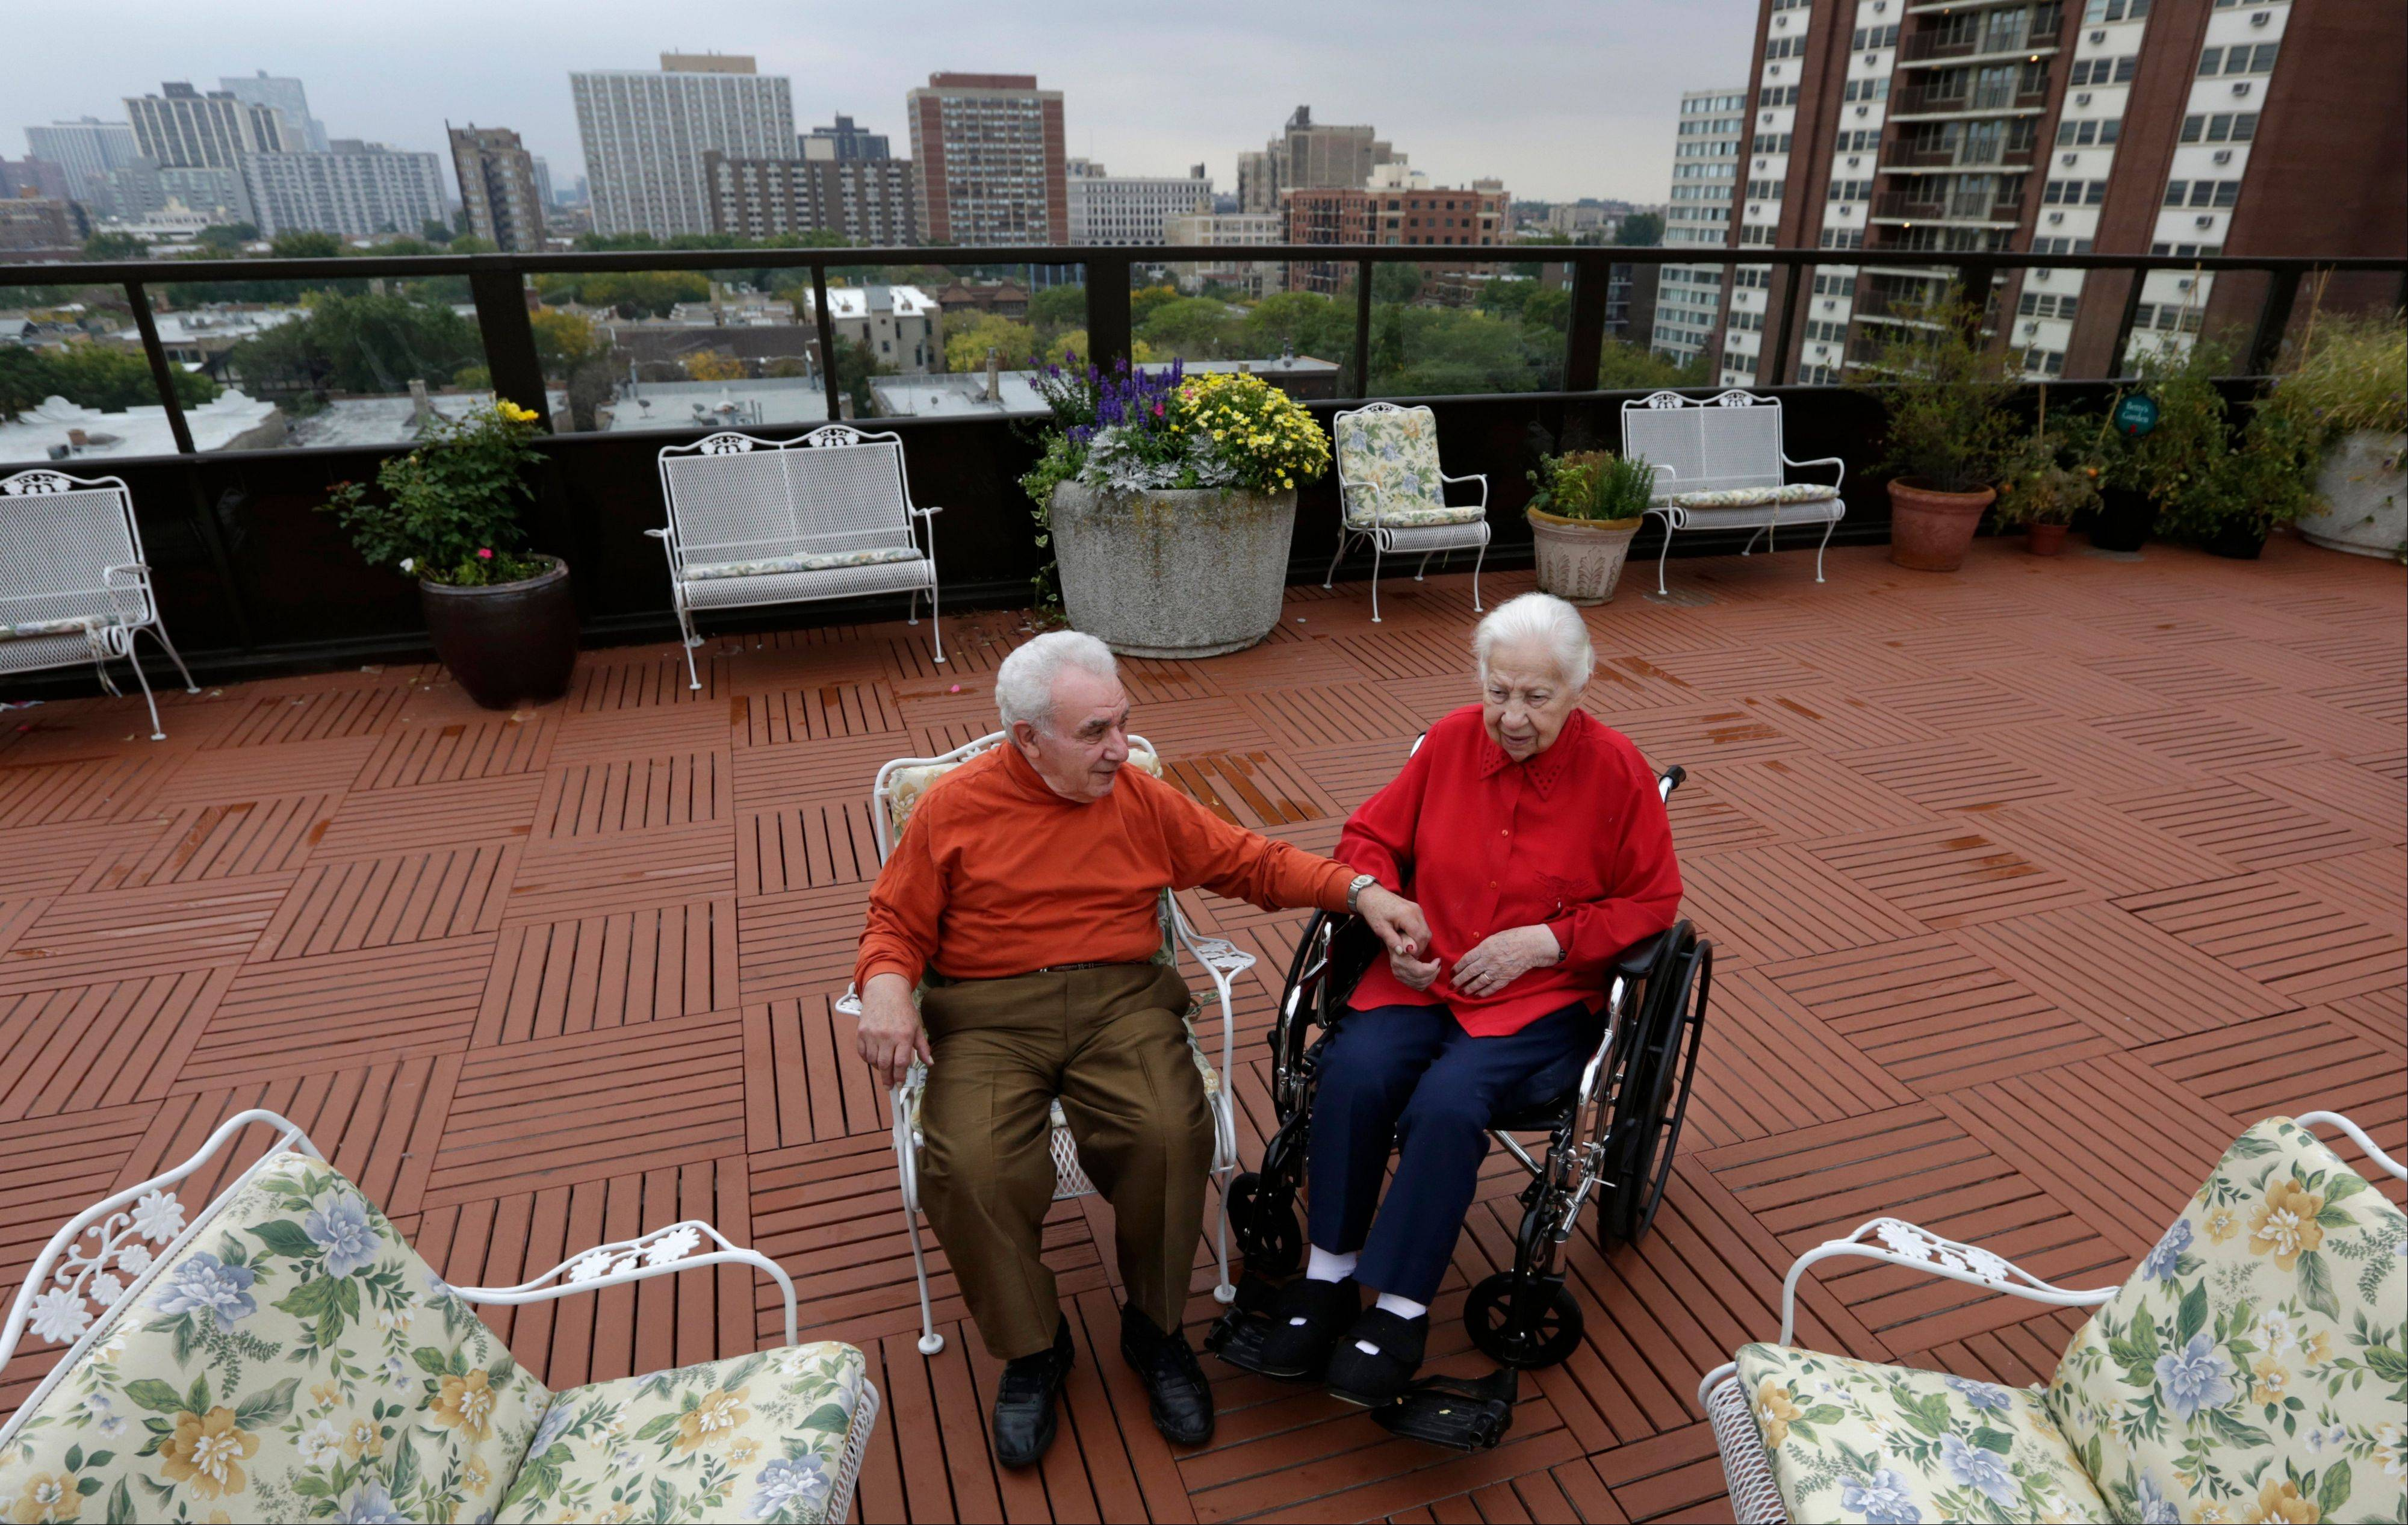 Holocaust survivors, Joe Chaba, 85, and his wife, Helen, 89, sit together on the rooftop at the retirement community called Selfhelp Home, on the North Side of Chicago.